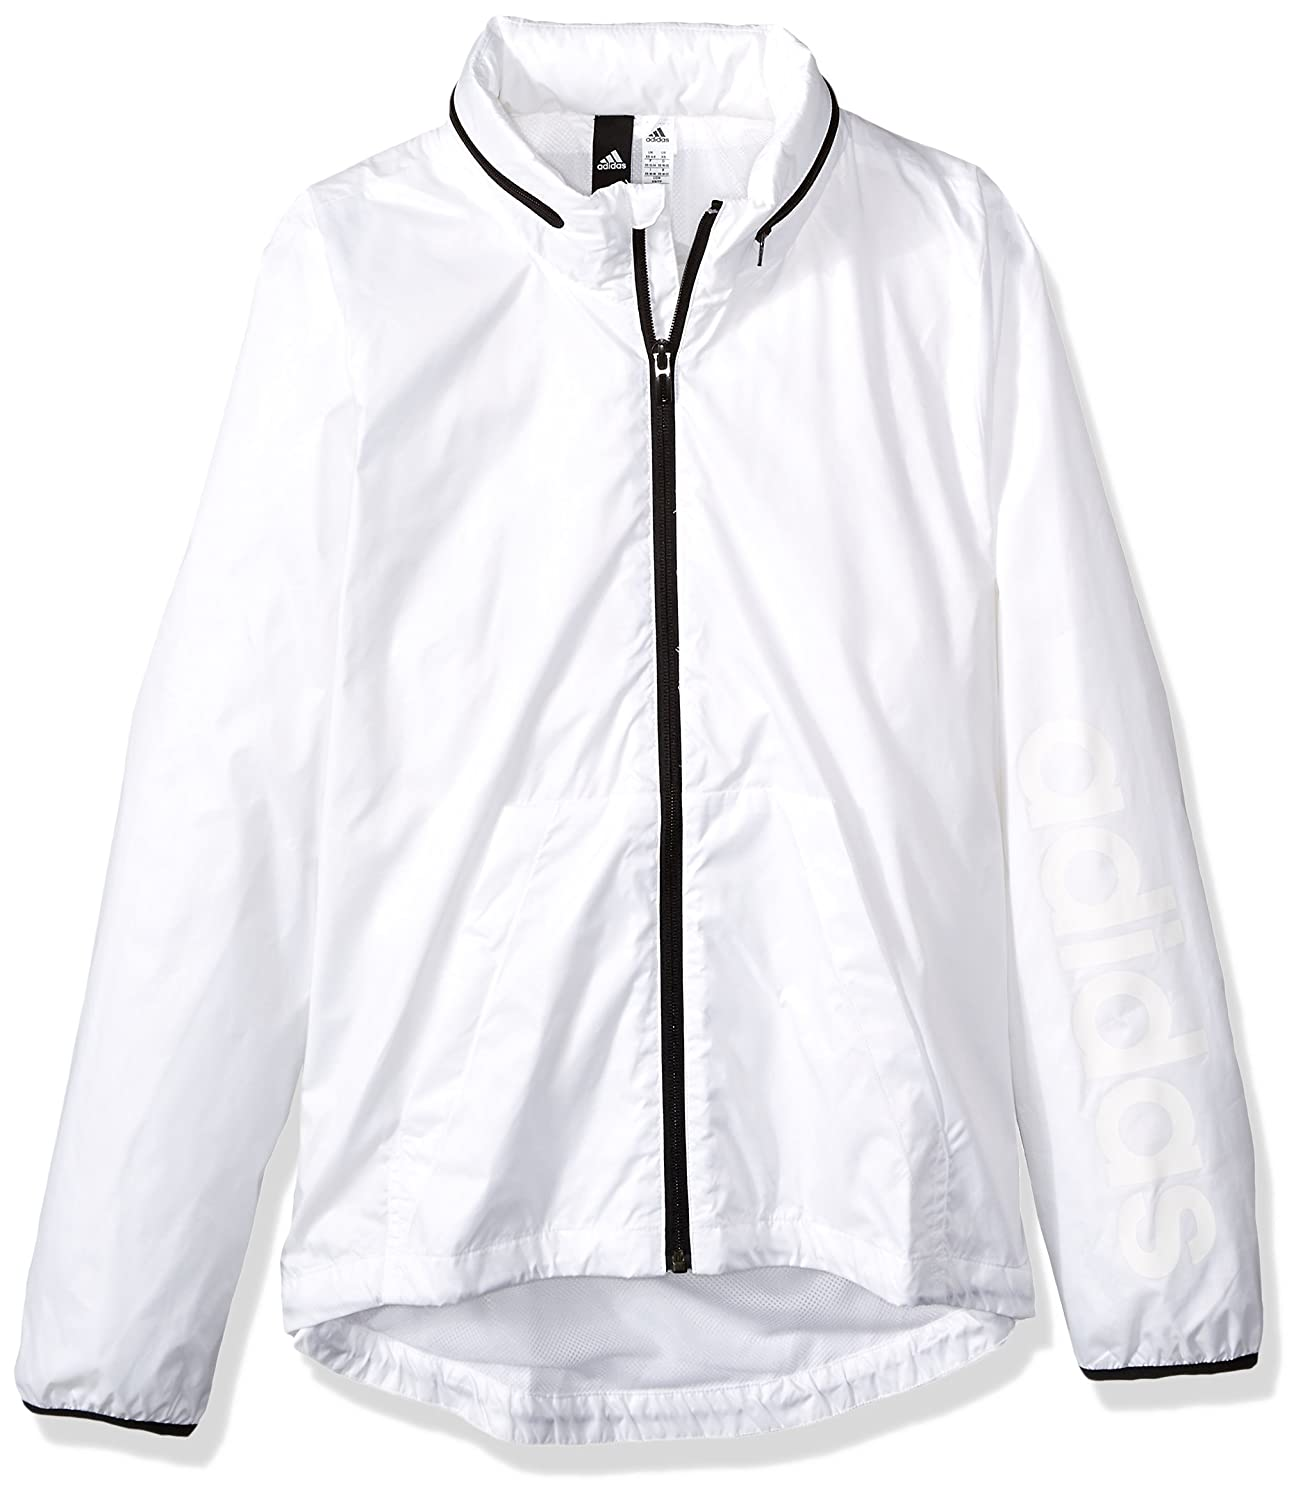 Adidas Women's Linear Windbreaker Jacket BR1096-PARENT